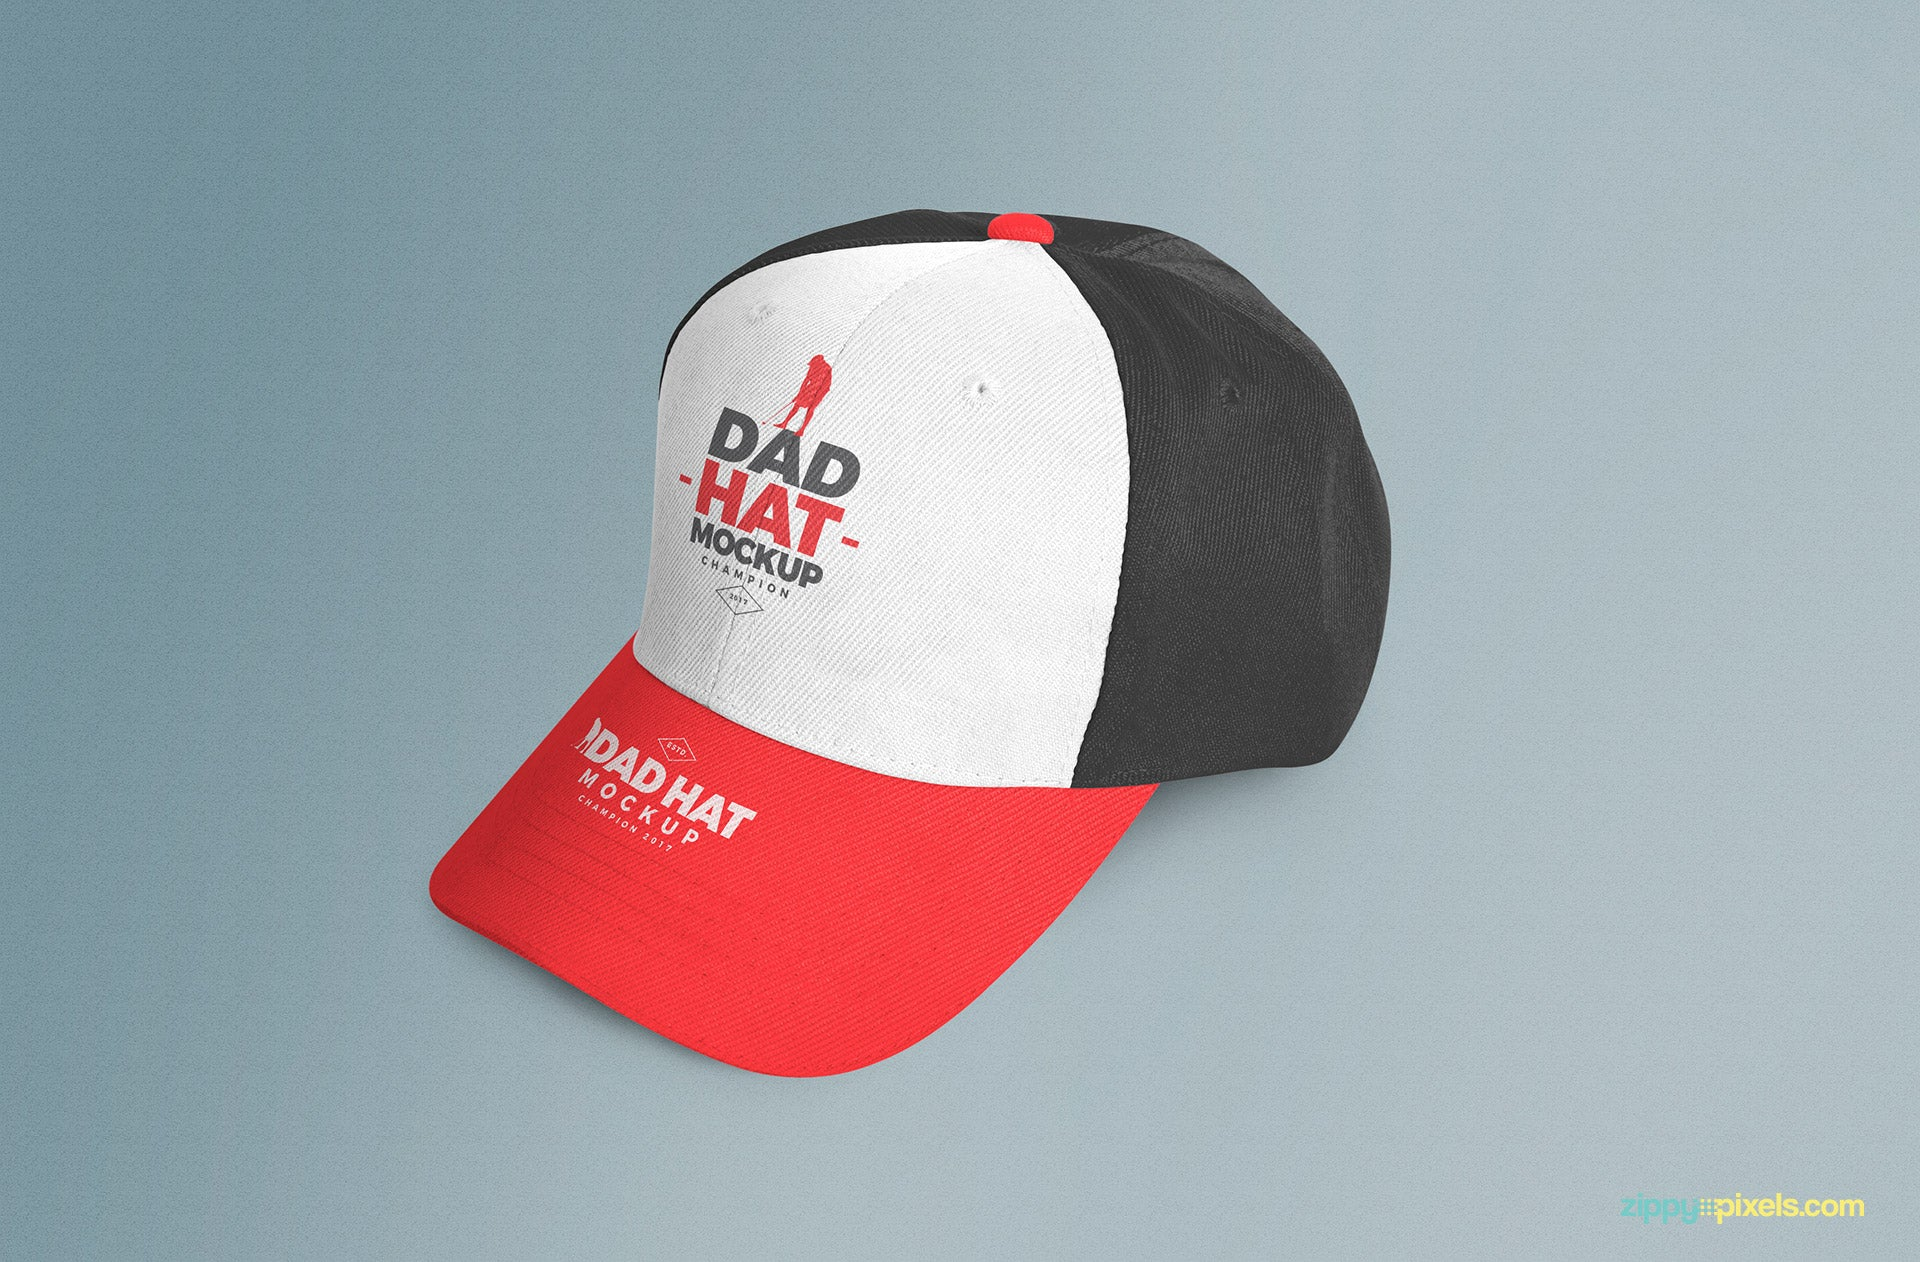 4c0c7d66f Customizable Dad Hat and Cap Mockup PSD - Mockup Hunt